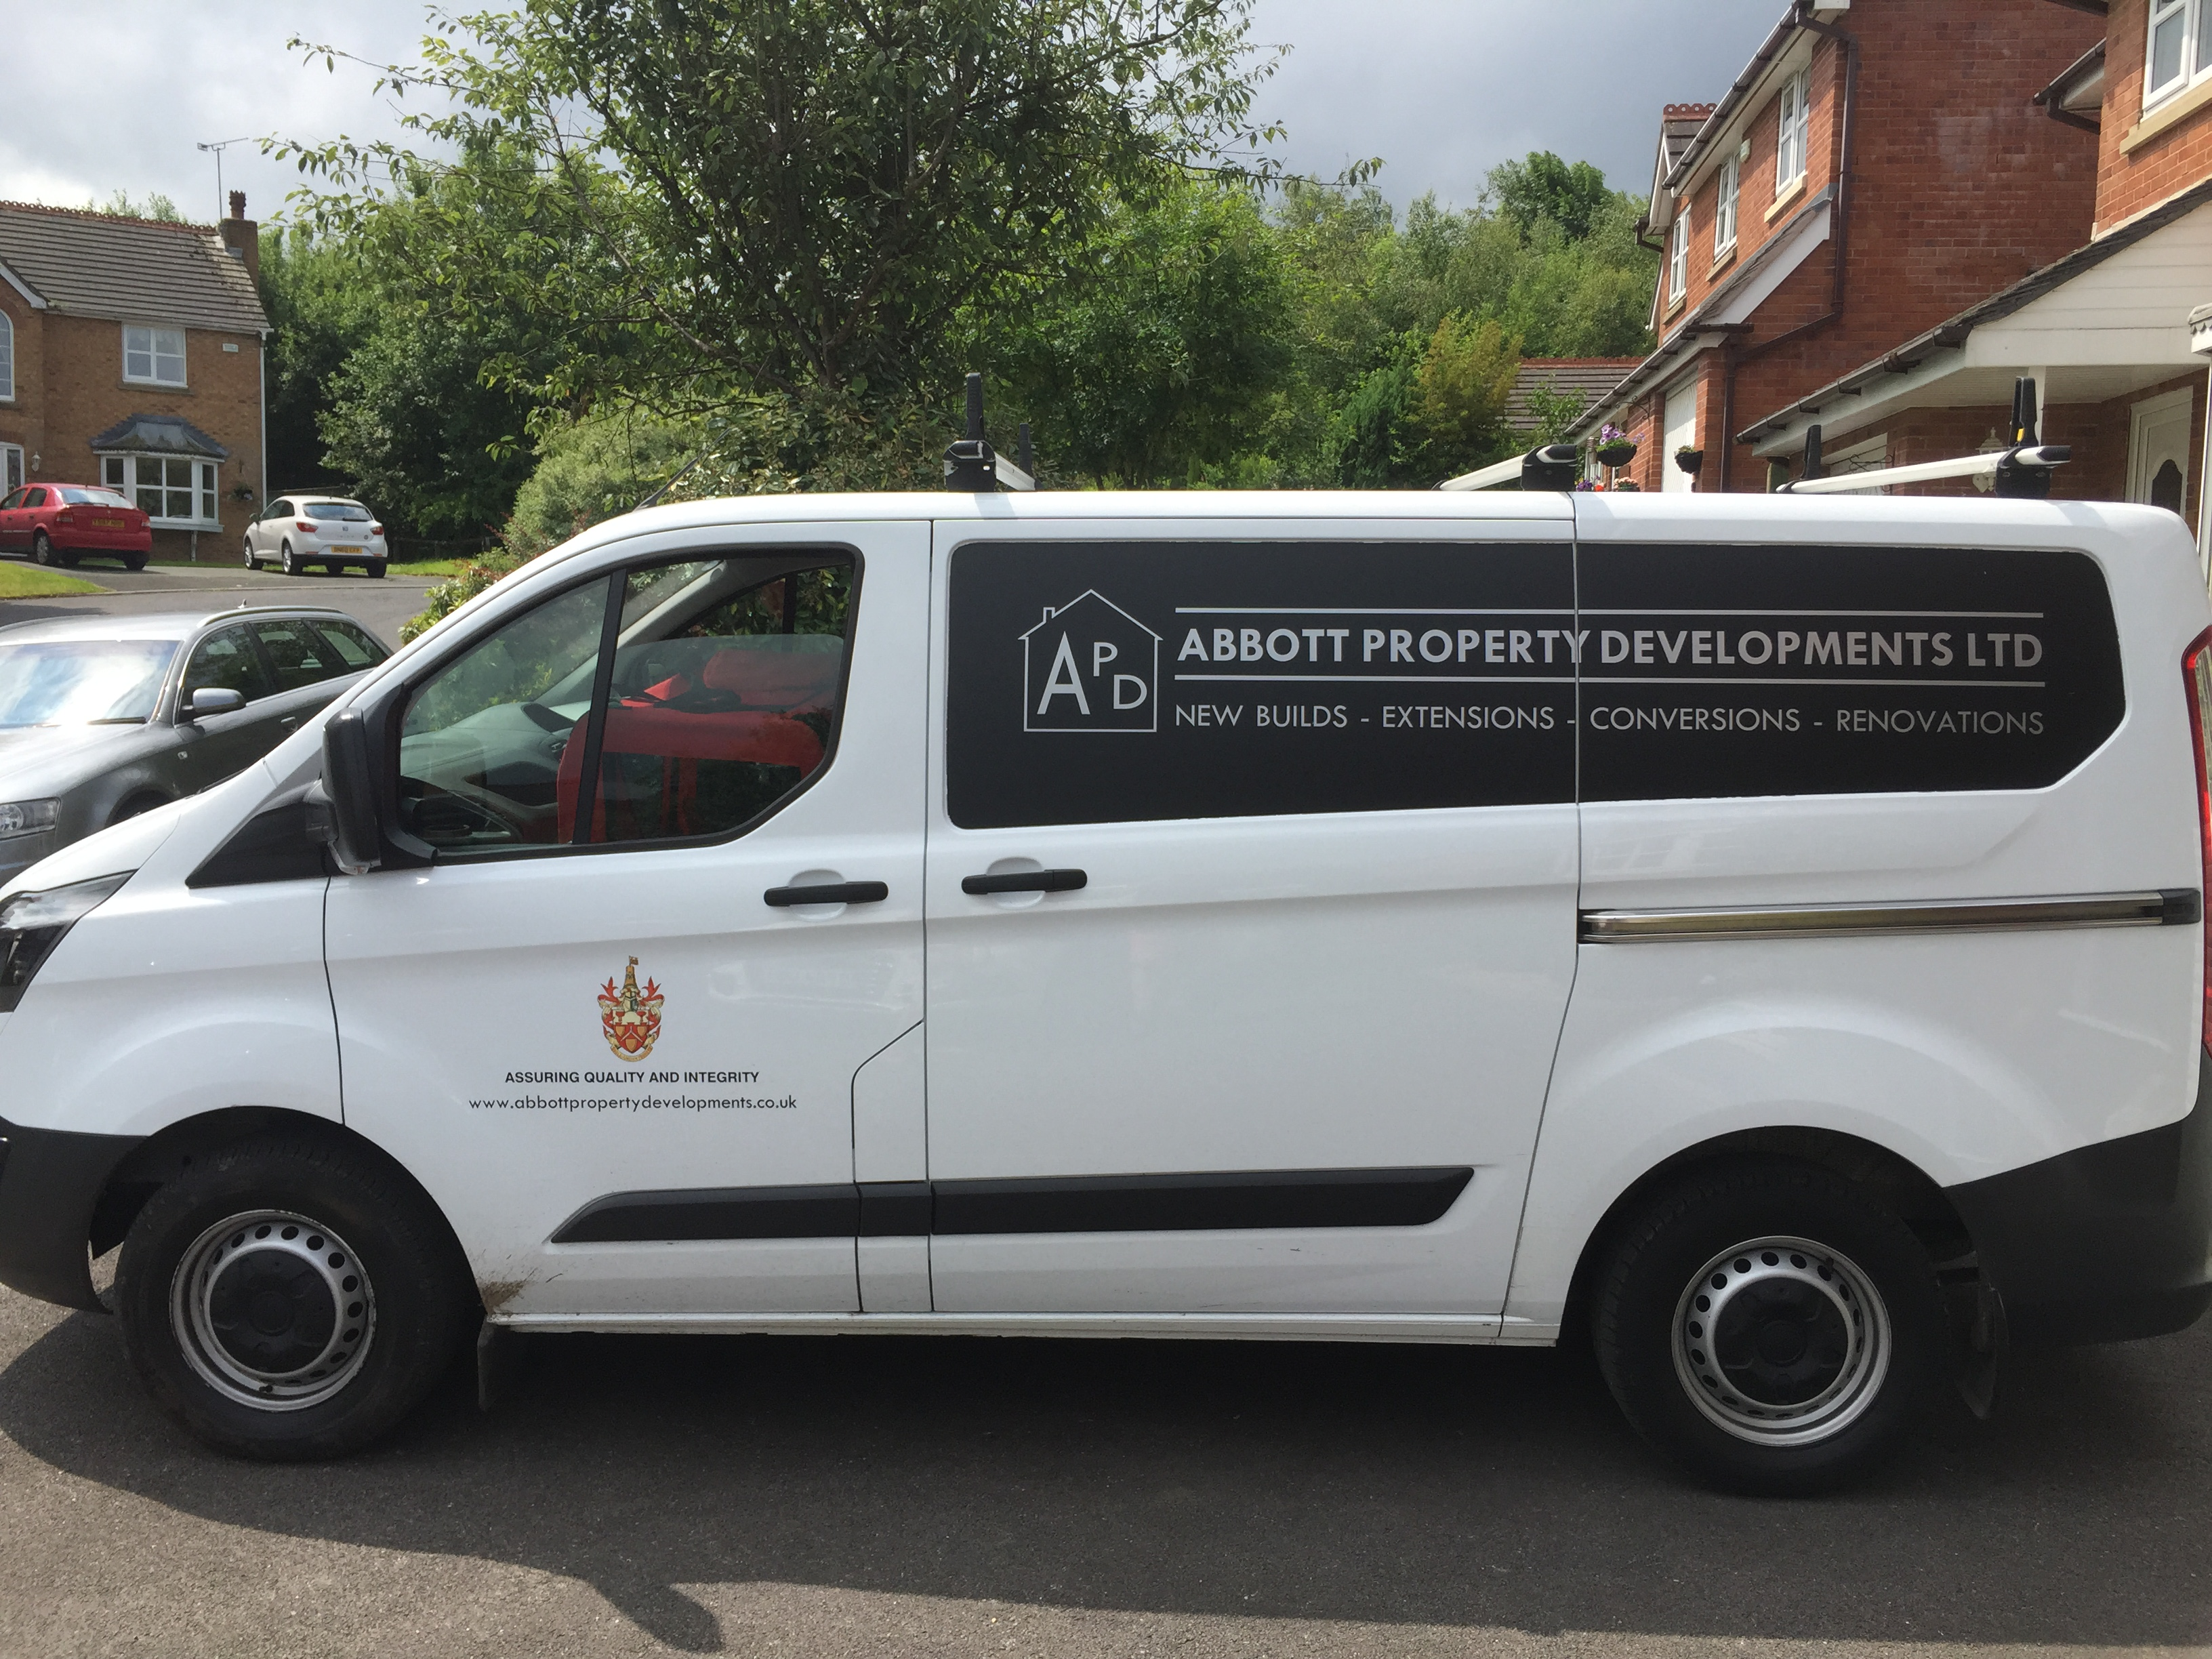 Abbott Property Developments Ltd Van